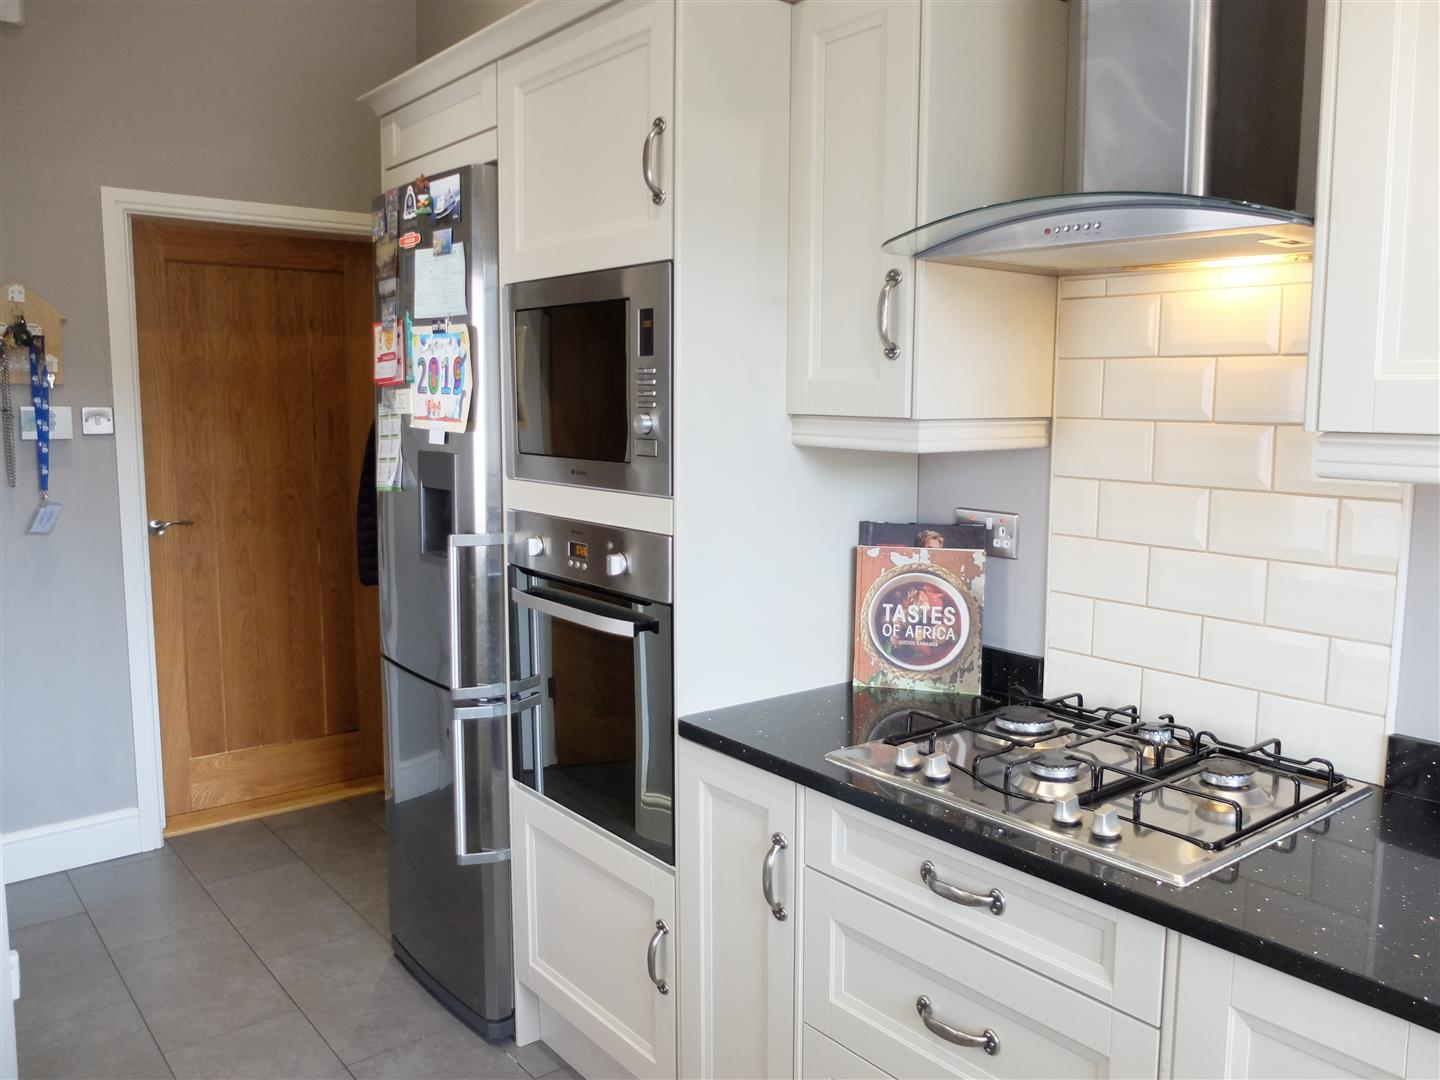 7, Caledonian Buildings Etterby Road Carlisle Home For Sale